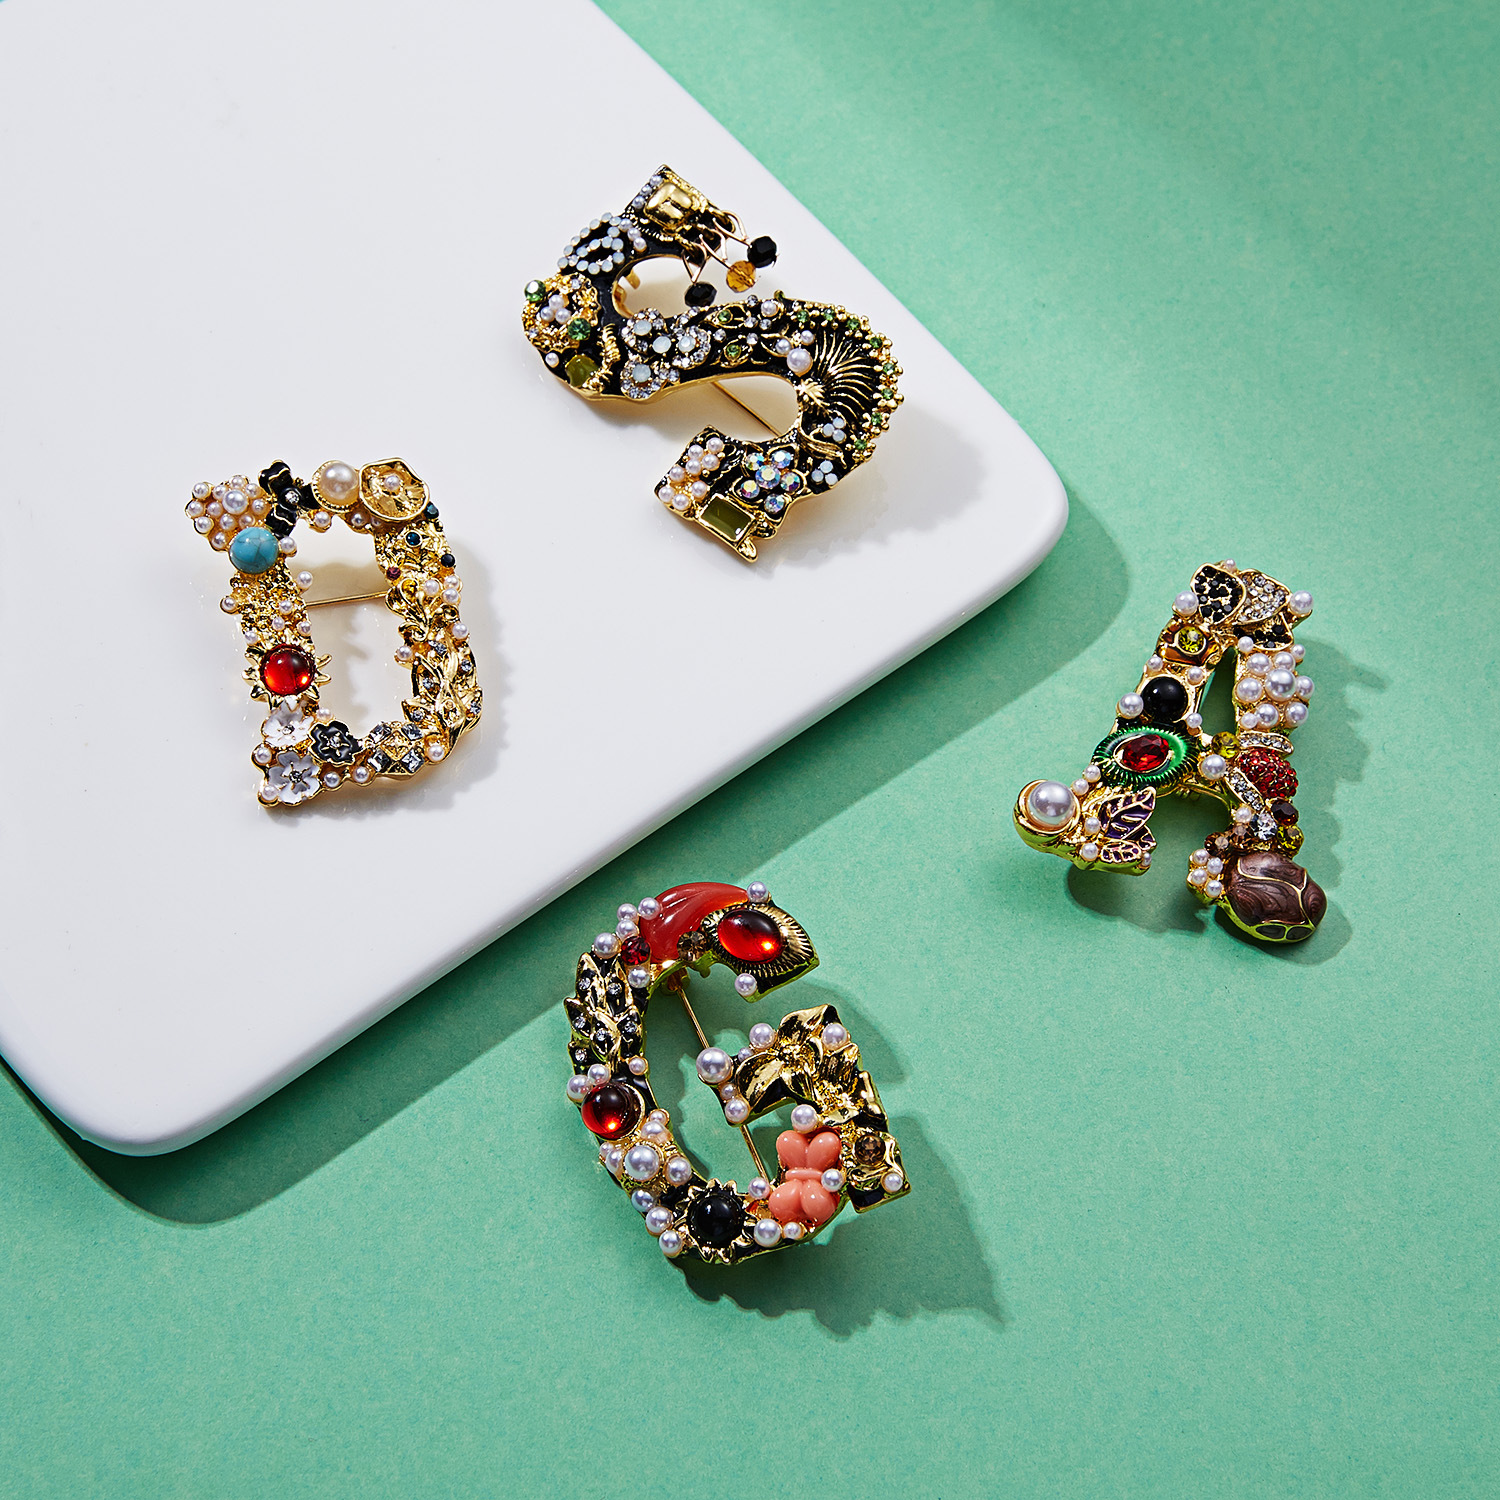 YHS031 Trade Assurance New Fashion Vintage  Enamel Letter Pearl Brooch Trendy Crystal Flower Letter Brooch Clothes Accessories